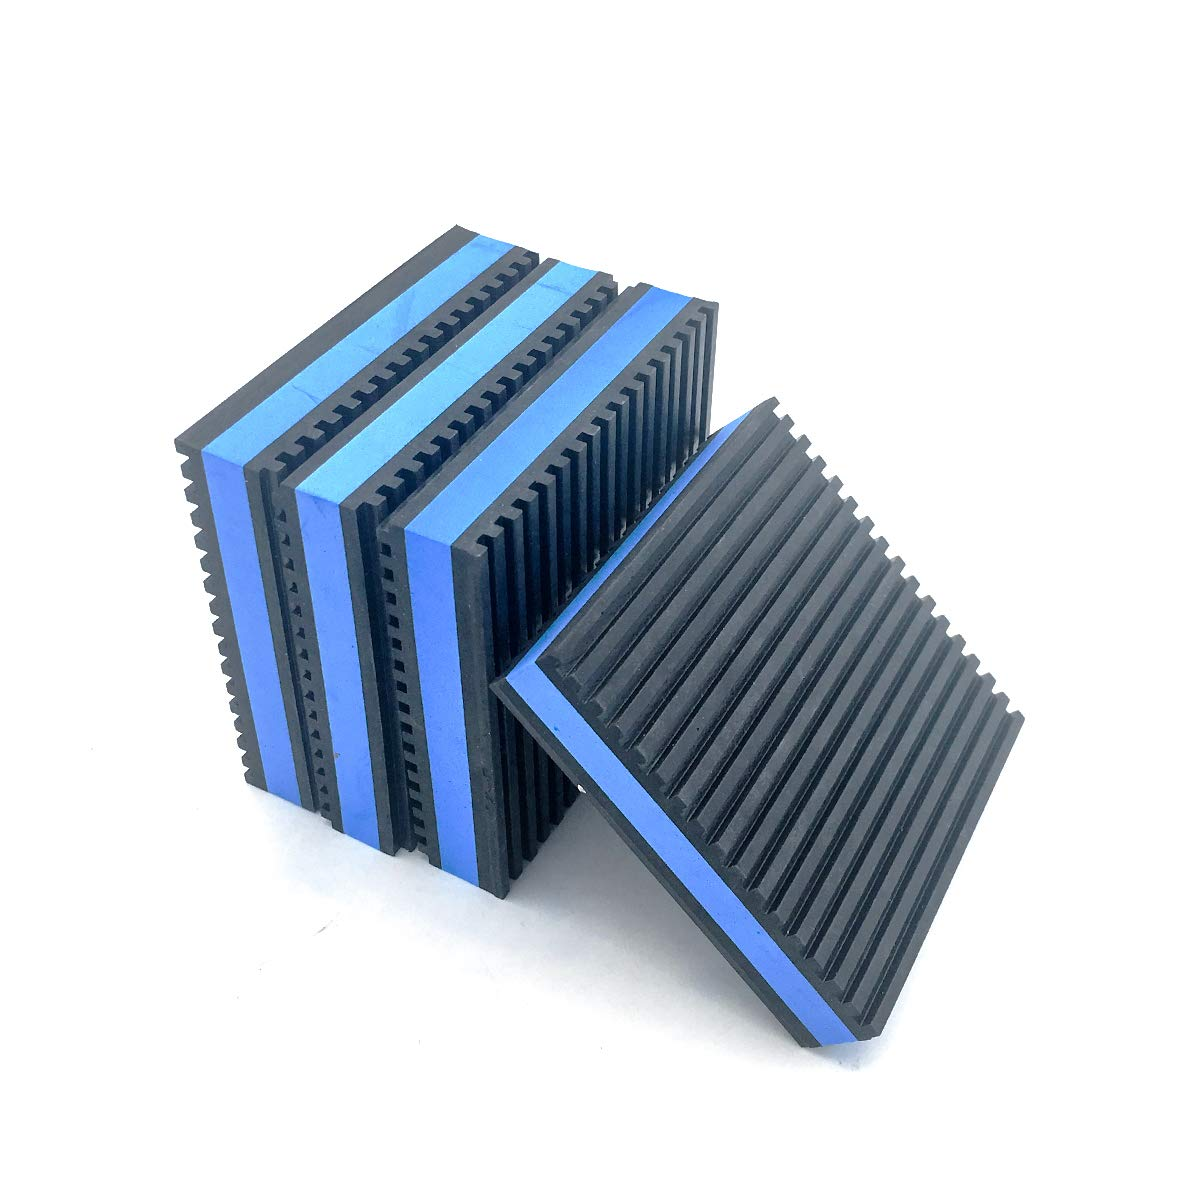 "Forestchill Heavy Duty Anti-Vibration Pads 4"" x 4"" x 7/8"" Ribbed Rubber with Blue Foam Center Isolation Pad for HVAC,Air Compressor, Washer and Dryer, Air Conditioner Units (Pack of 4)"